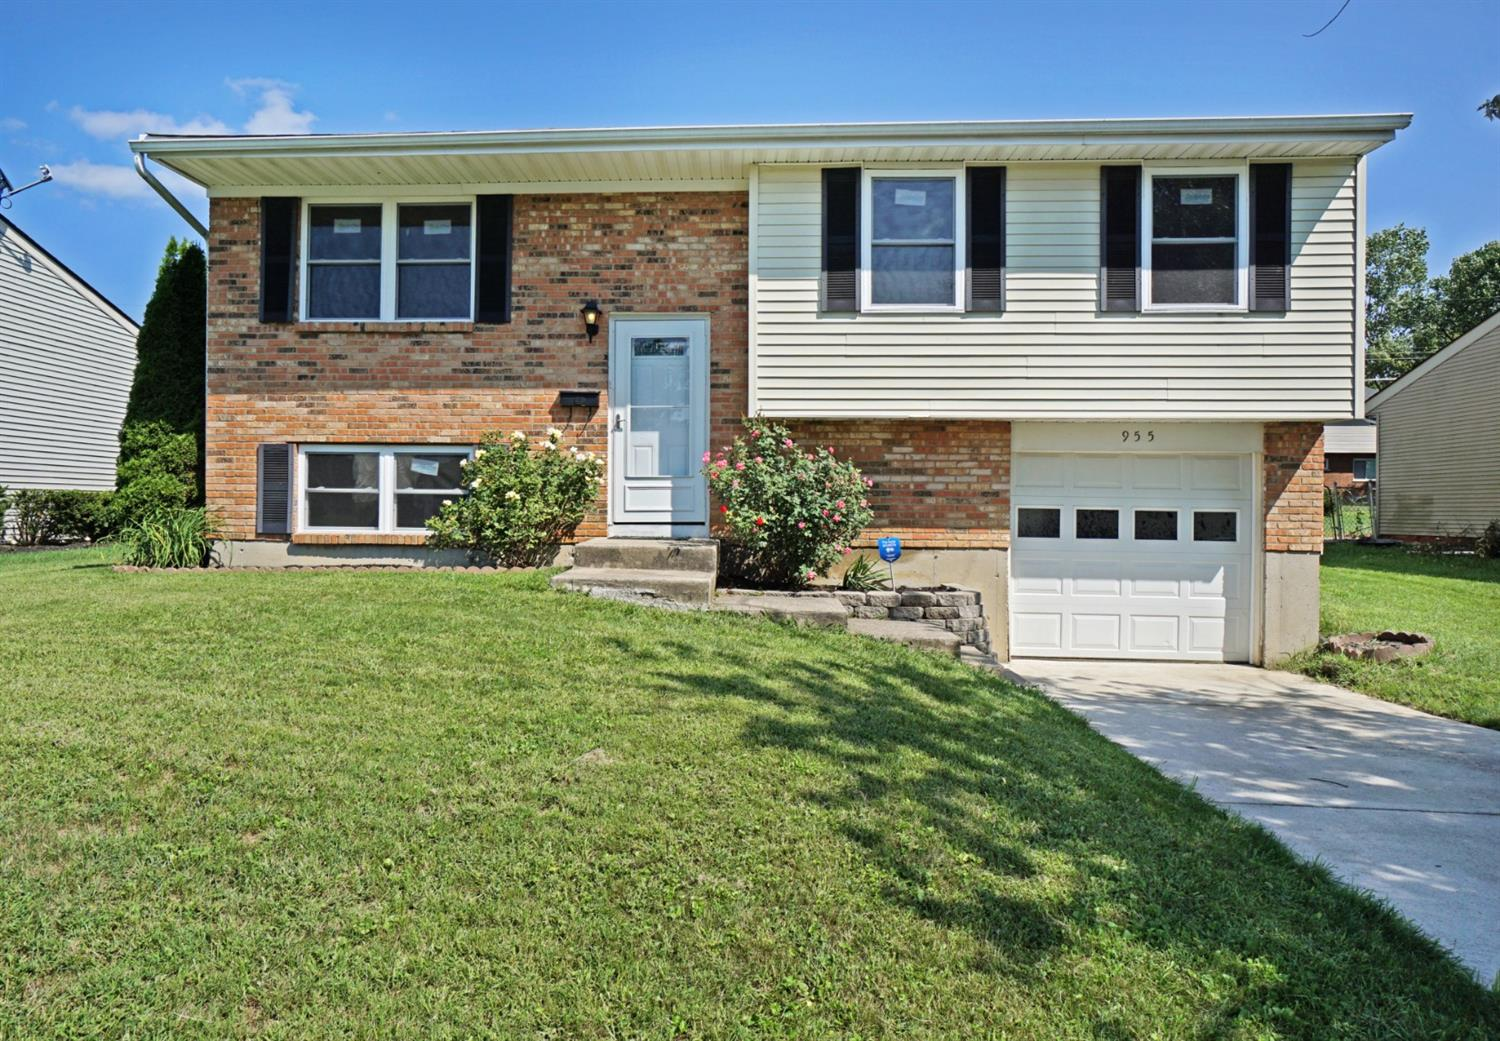 955 Harrogate Ct Forest Park, OH